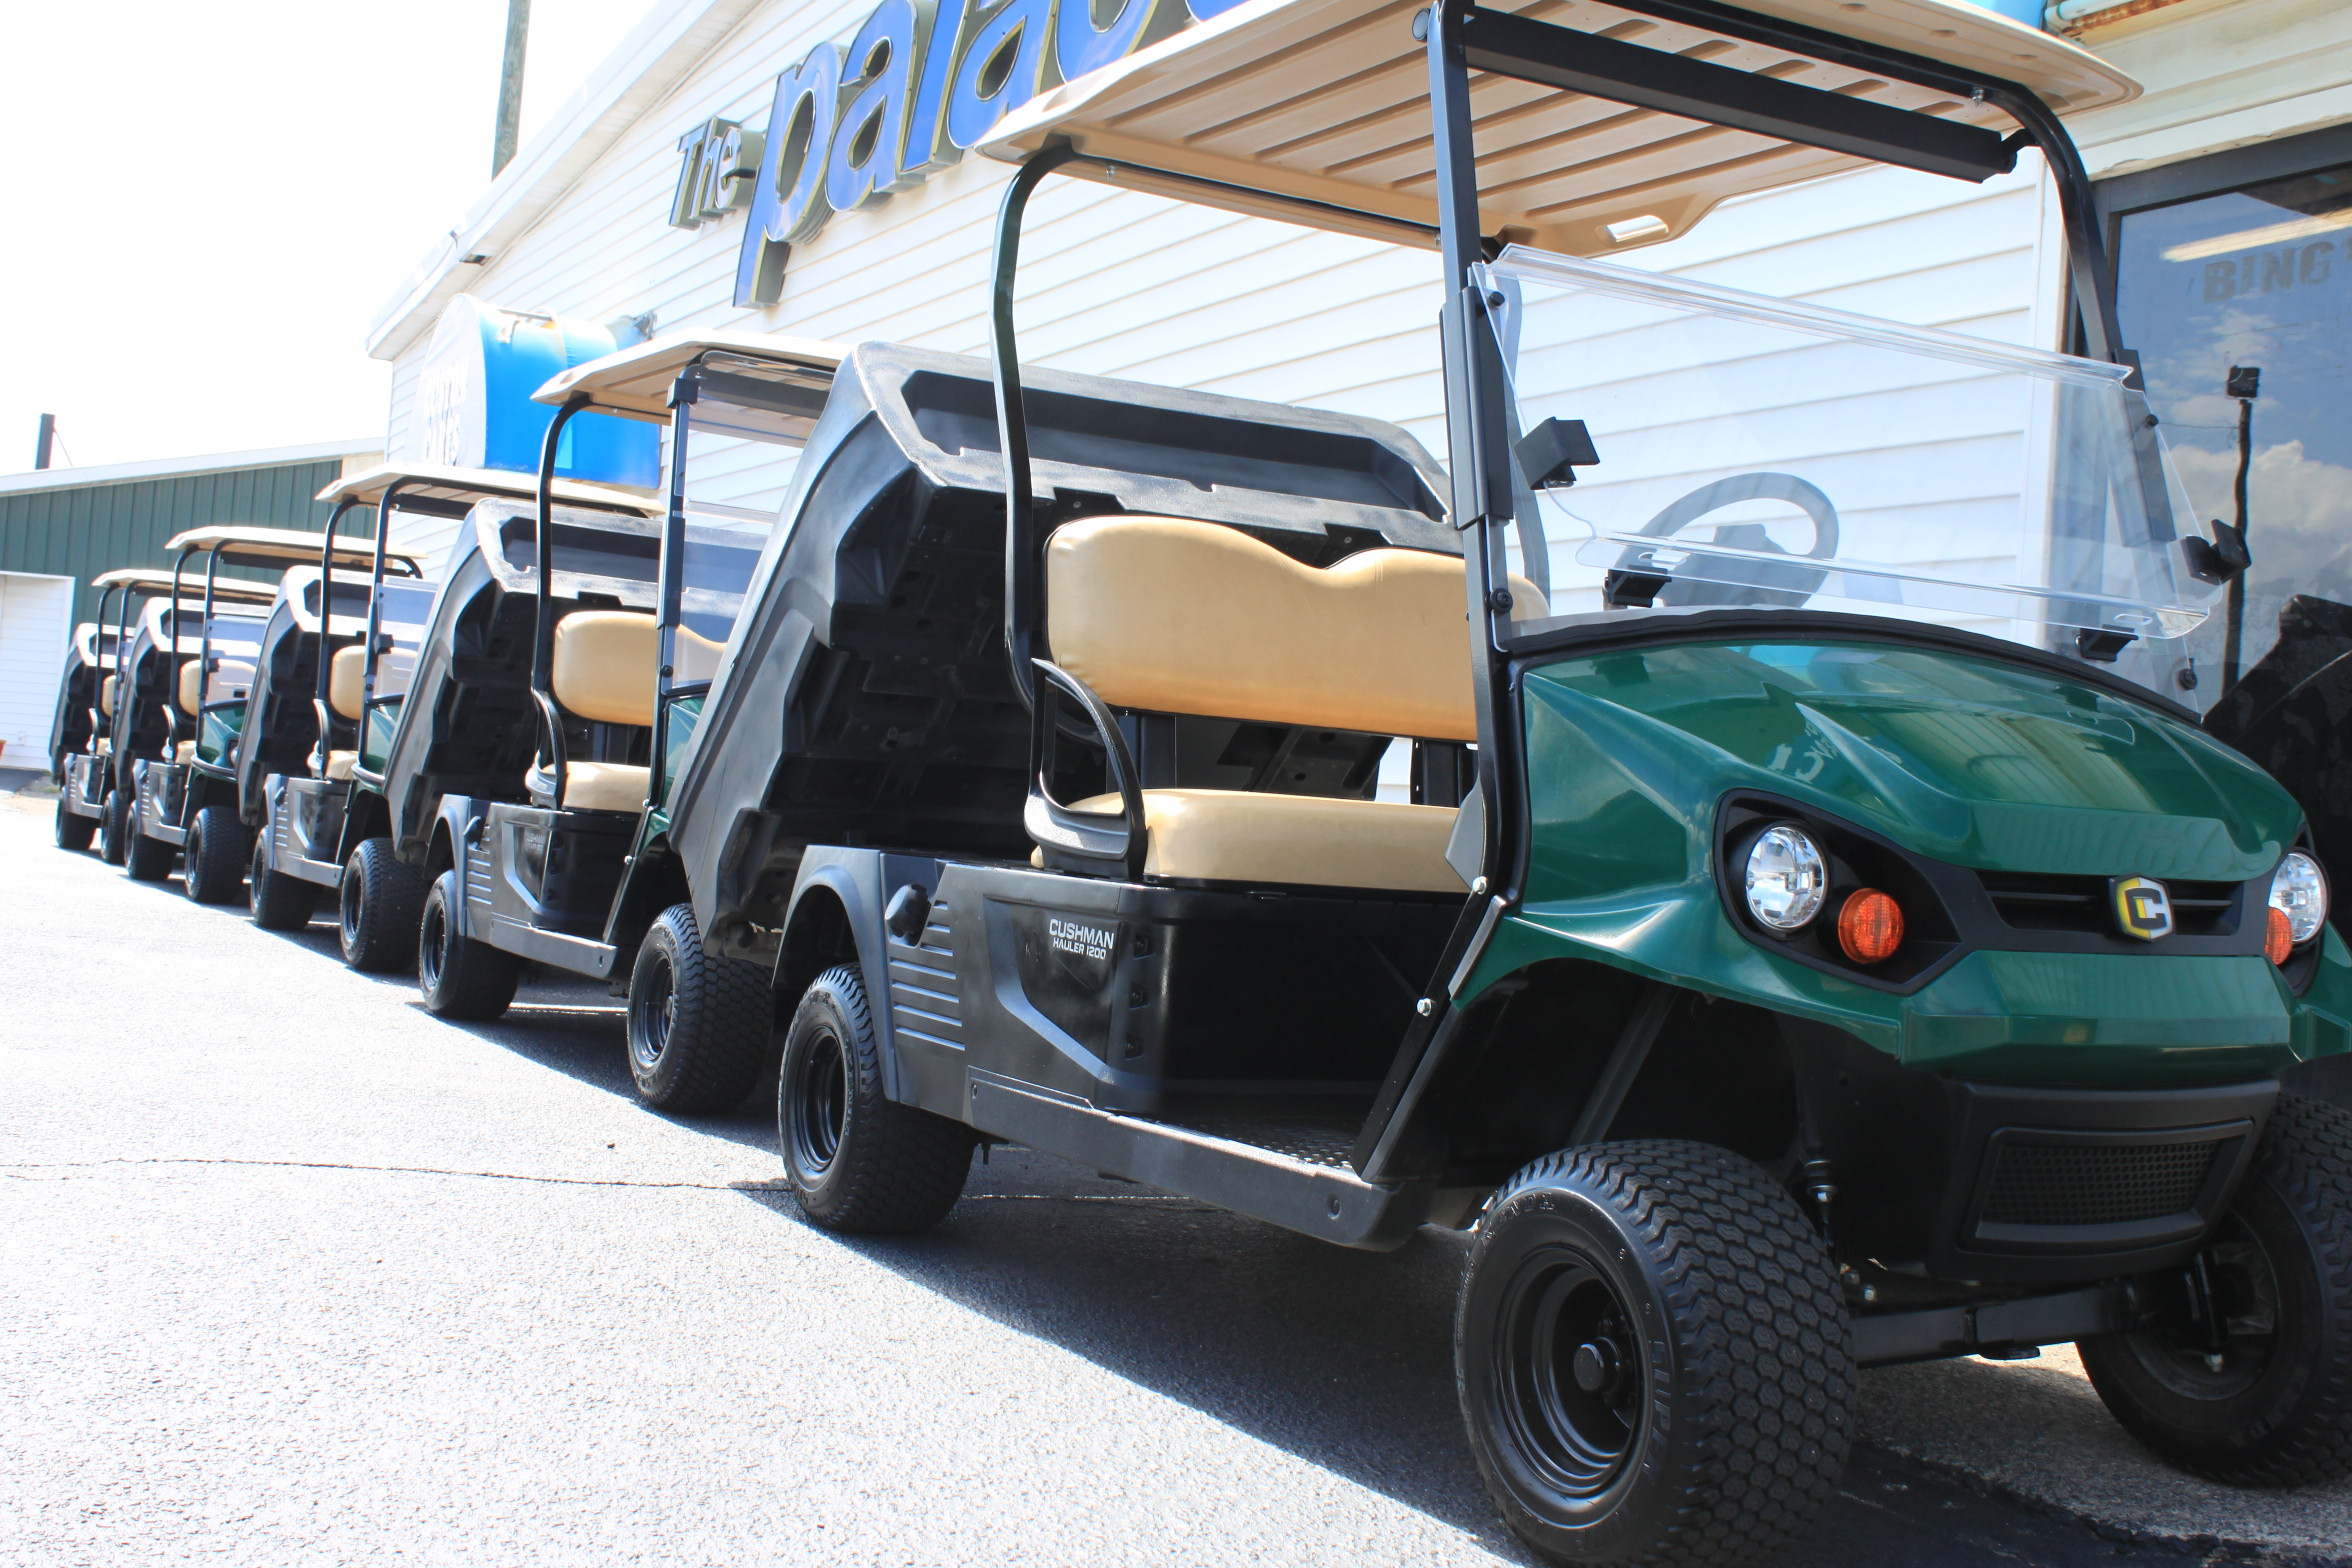 STOCK# 2017HAULERS, 2017 CUSHMAN HAULER GAS GOLF CART